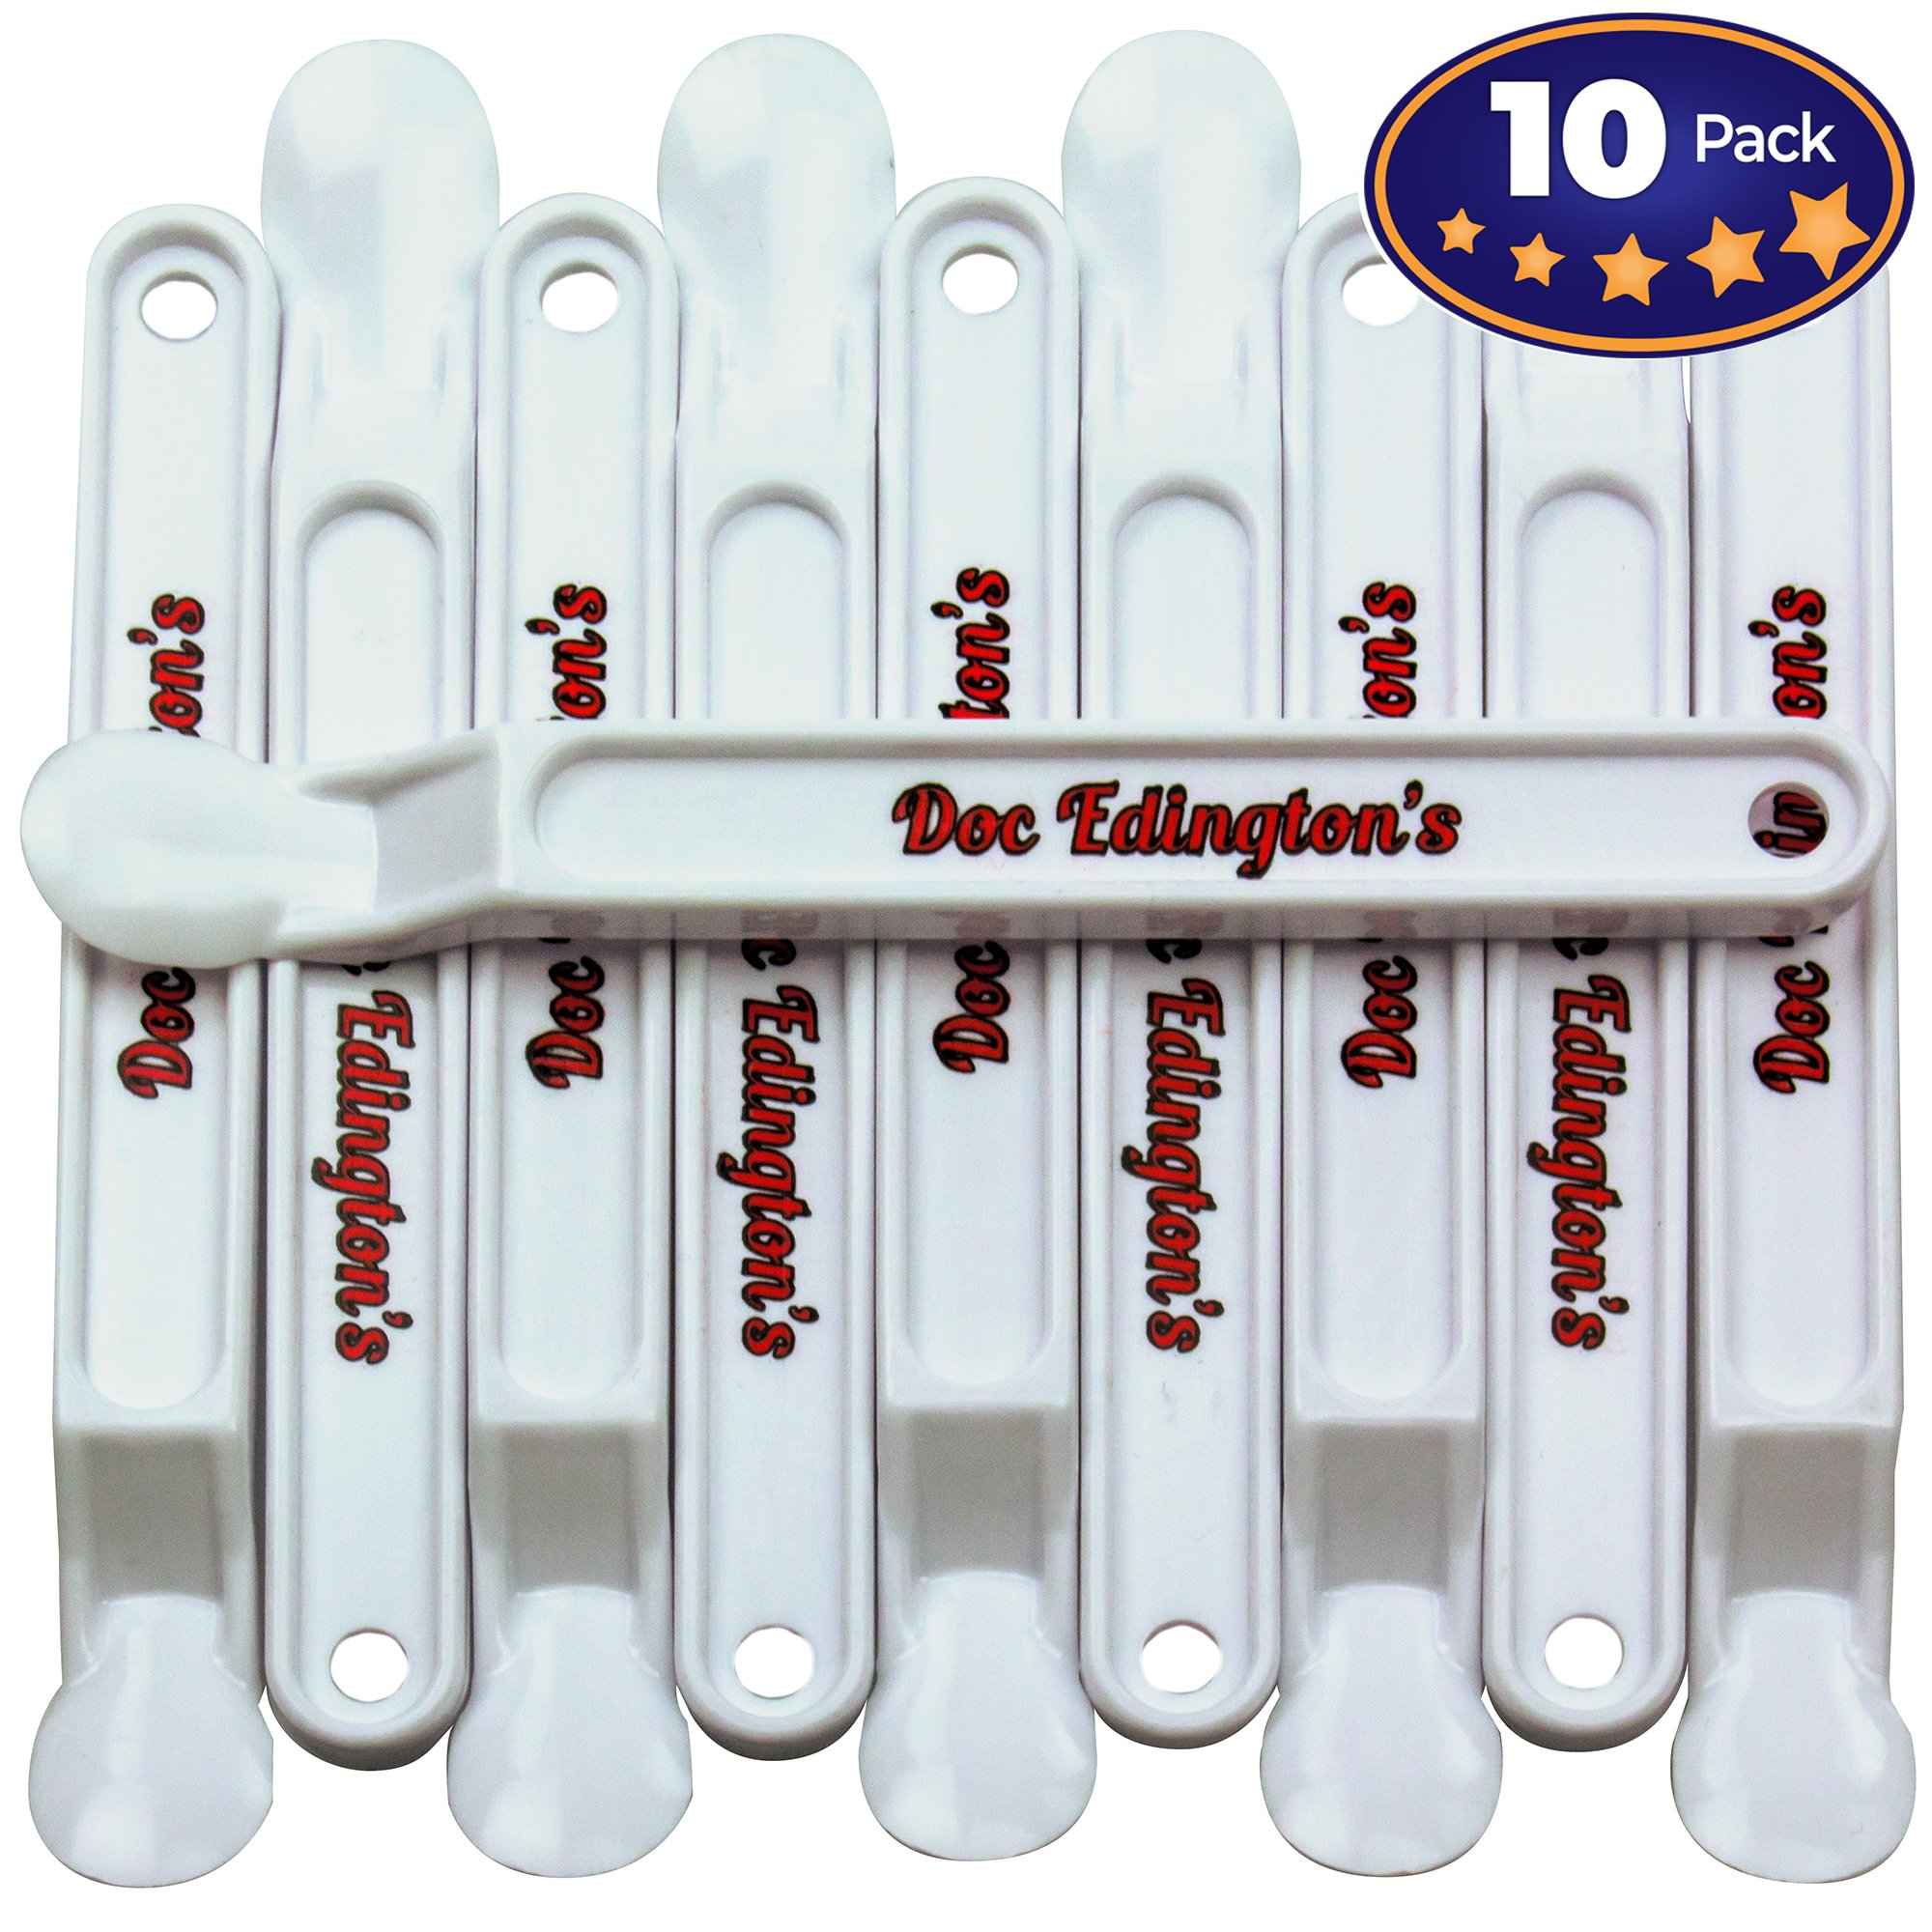 Doc Edingtons Scotty Peeler 10 Pack. Pro-Grade Label Scraper/Sticker Removal Tool Works Great & Safer Than Razor Blade Scrapers. Use This Plastic Scraper With Our Adhesive Remover for Best Results.